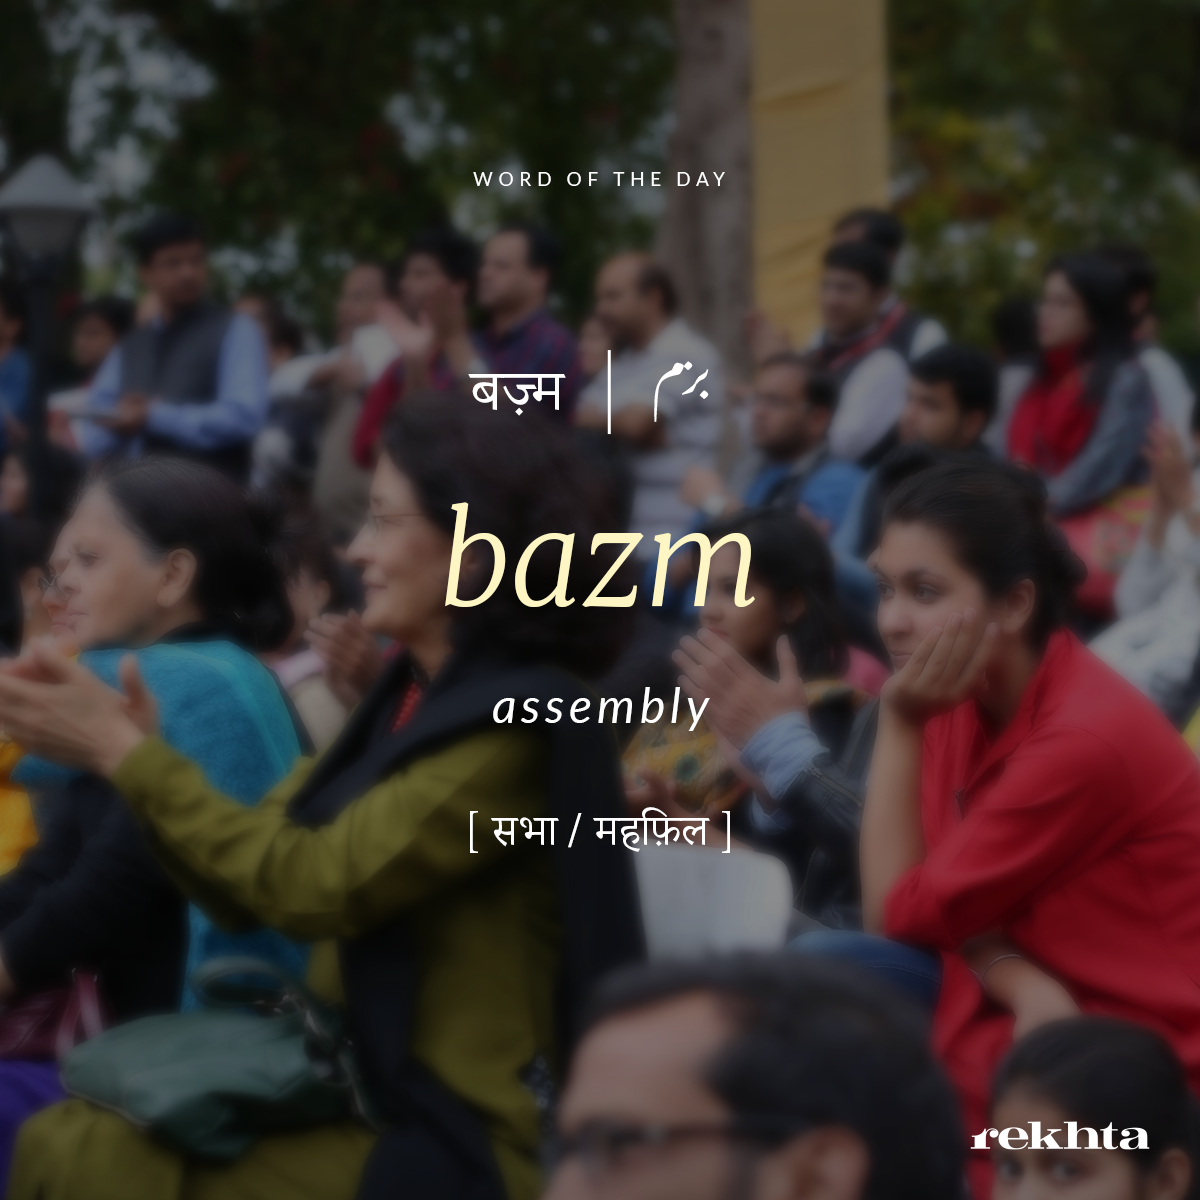 Pin by Rekhta Foundation on Urdu Word of the Day (With